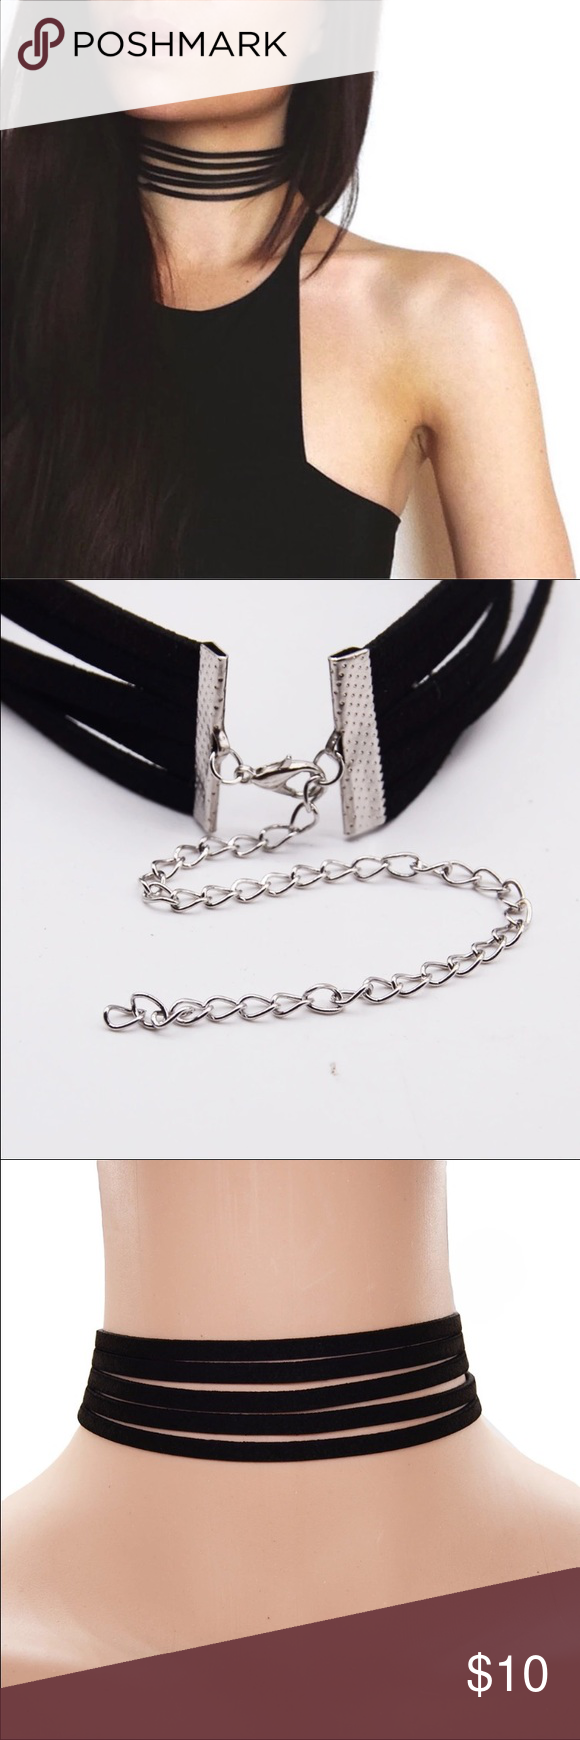 Black faux leather choker Cute choker adjustable clasp vegan leather. Brand new. I have two sizes. Thicker one and thinner one. Let me know which you'd like. Jewelry Necklaces